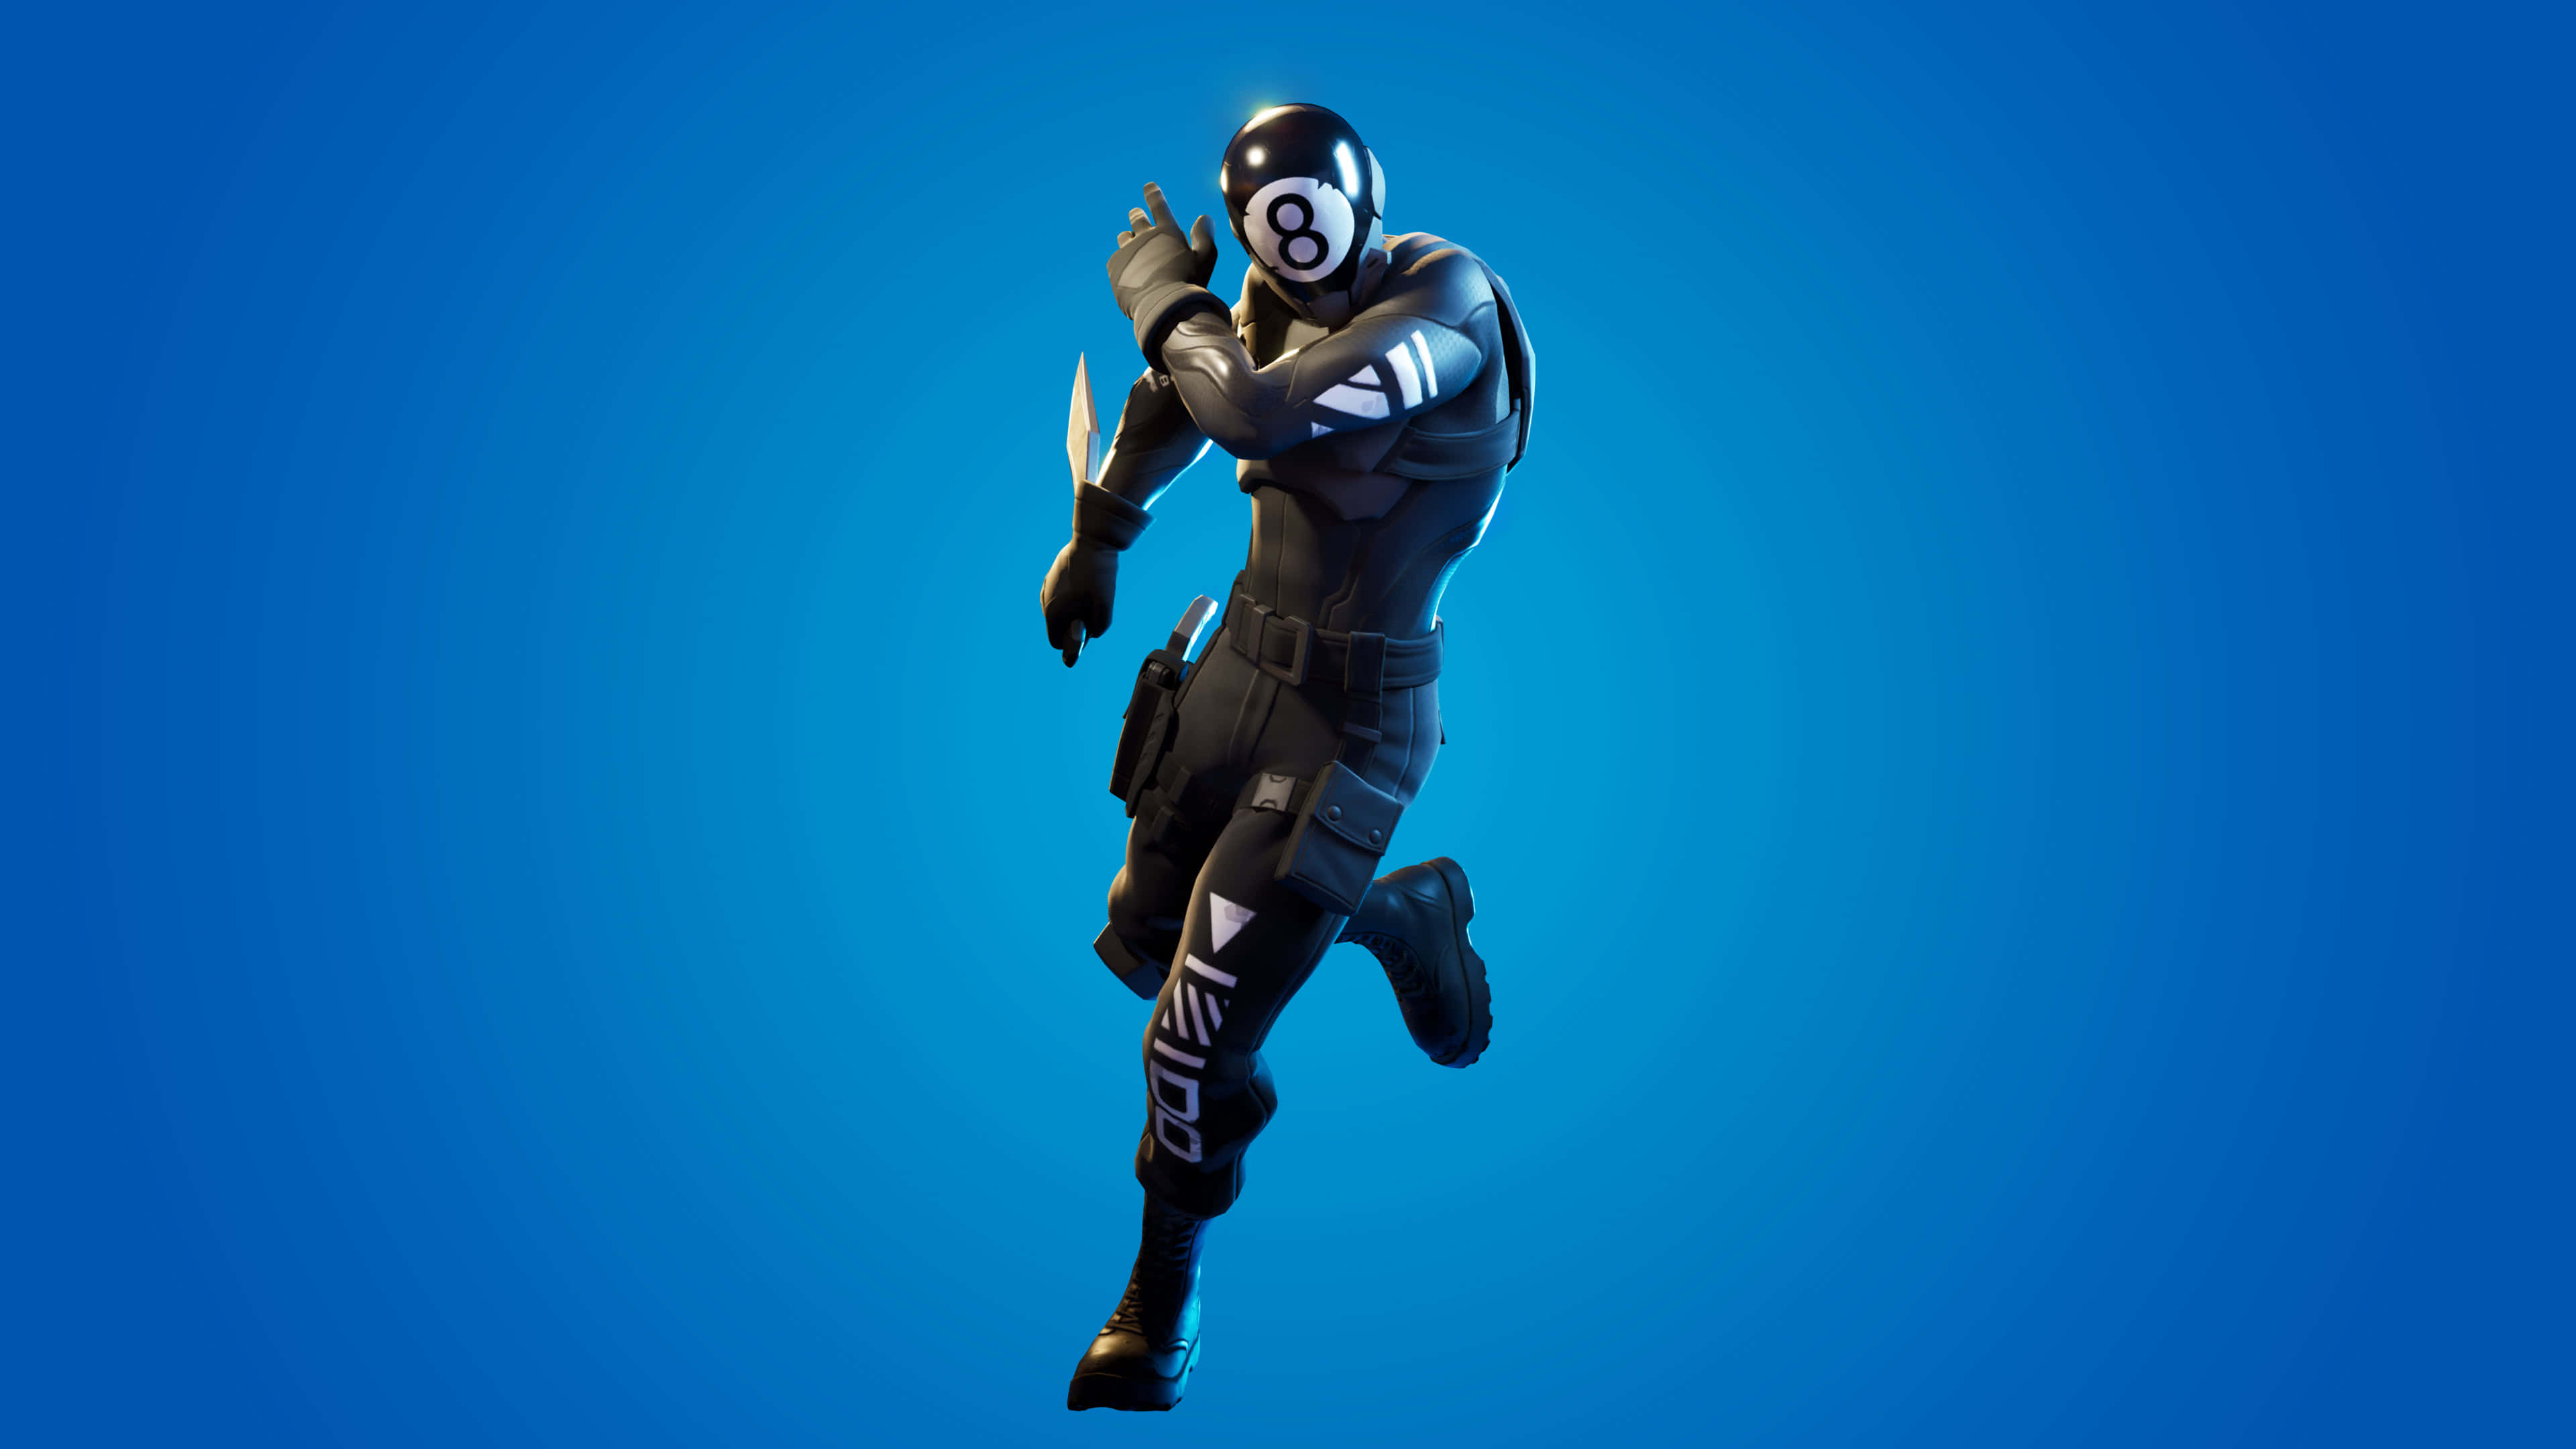 fortnite stripes and solids set 8-ball vs scratch skin outfit uhd 4k wallpaper